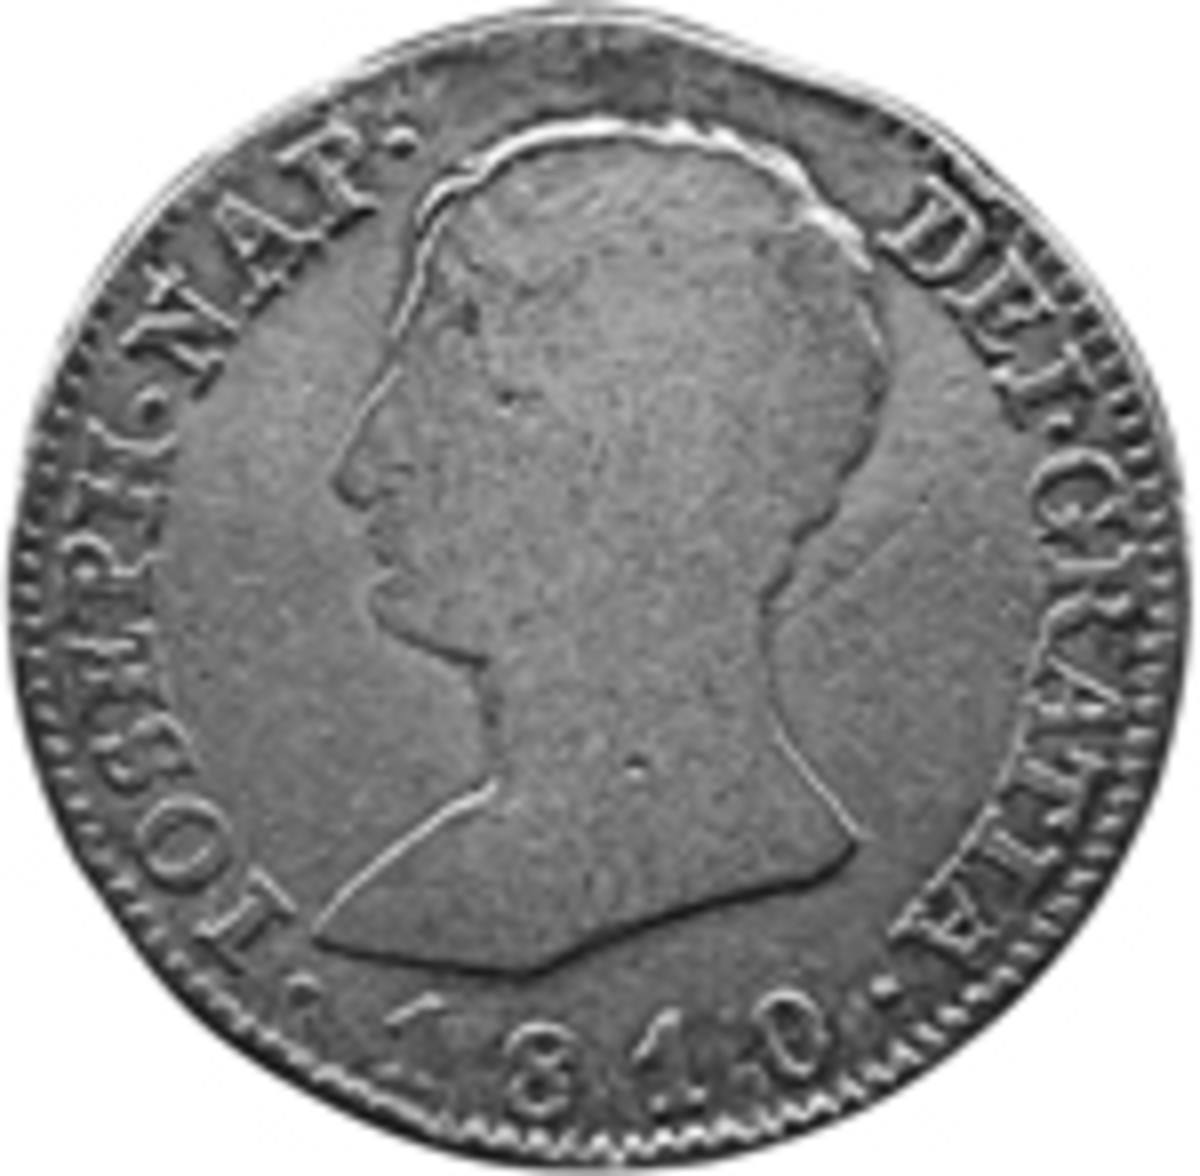 Mostly though, the Fernandistas issued regular coins like this ordinary 2 reales of Madrid dated 1814. (Actual size, 26mm)